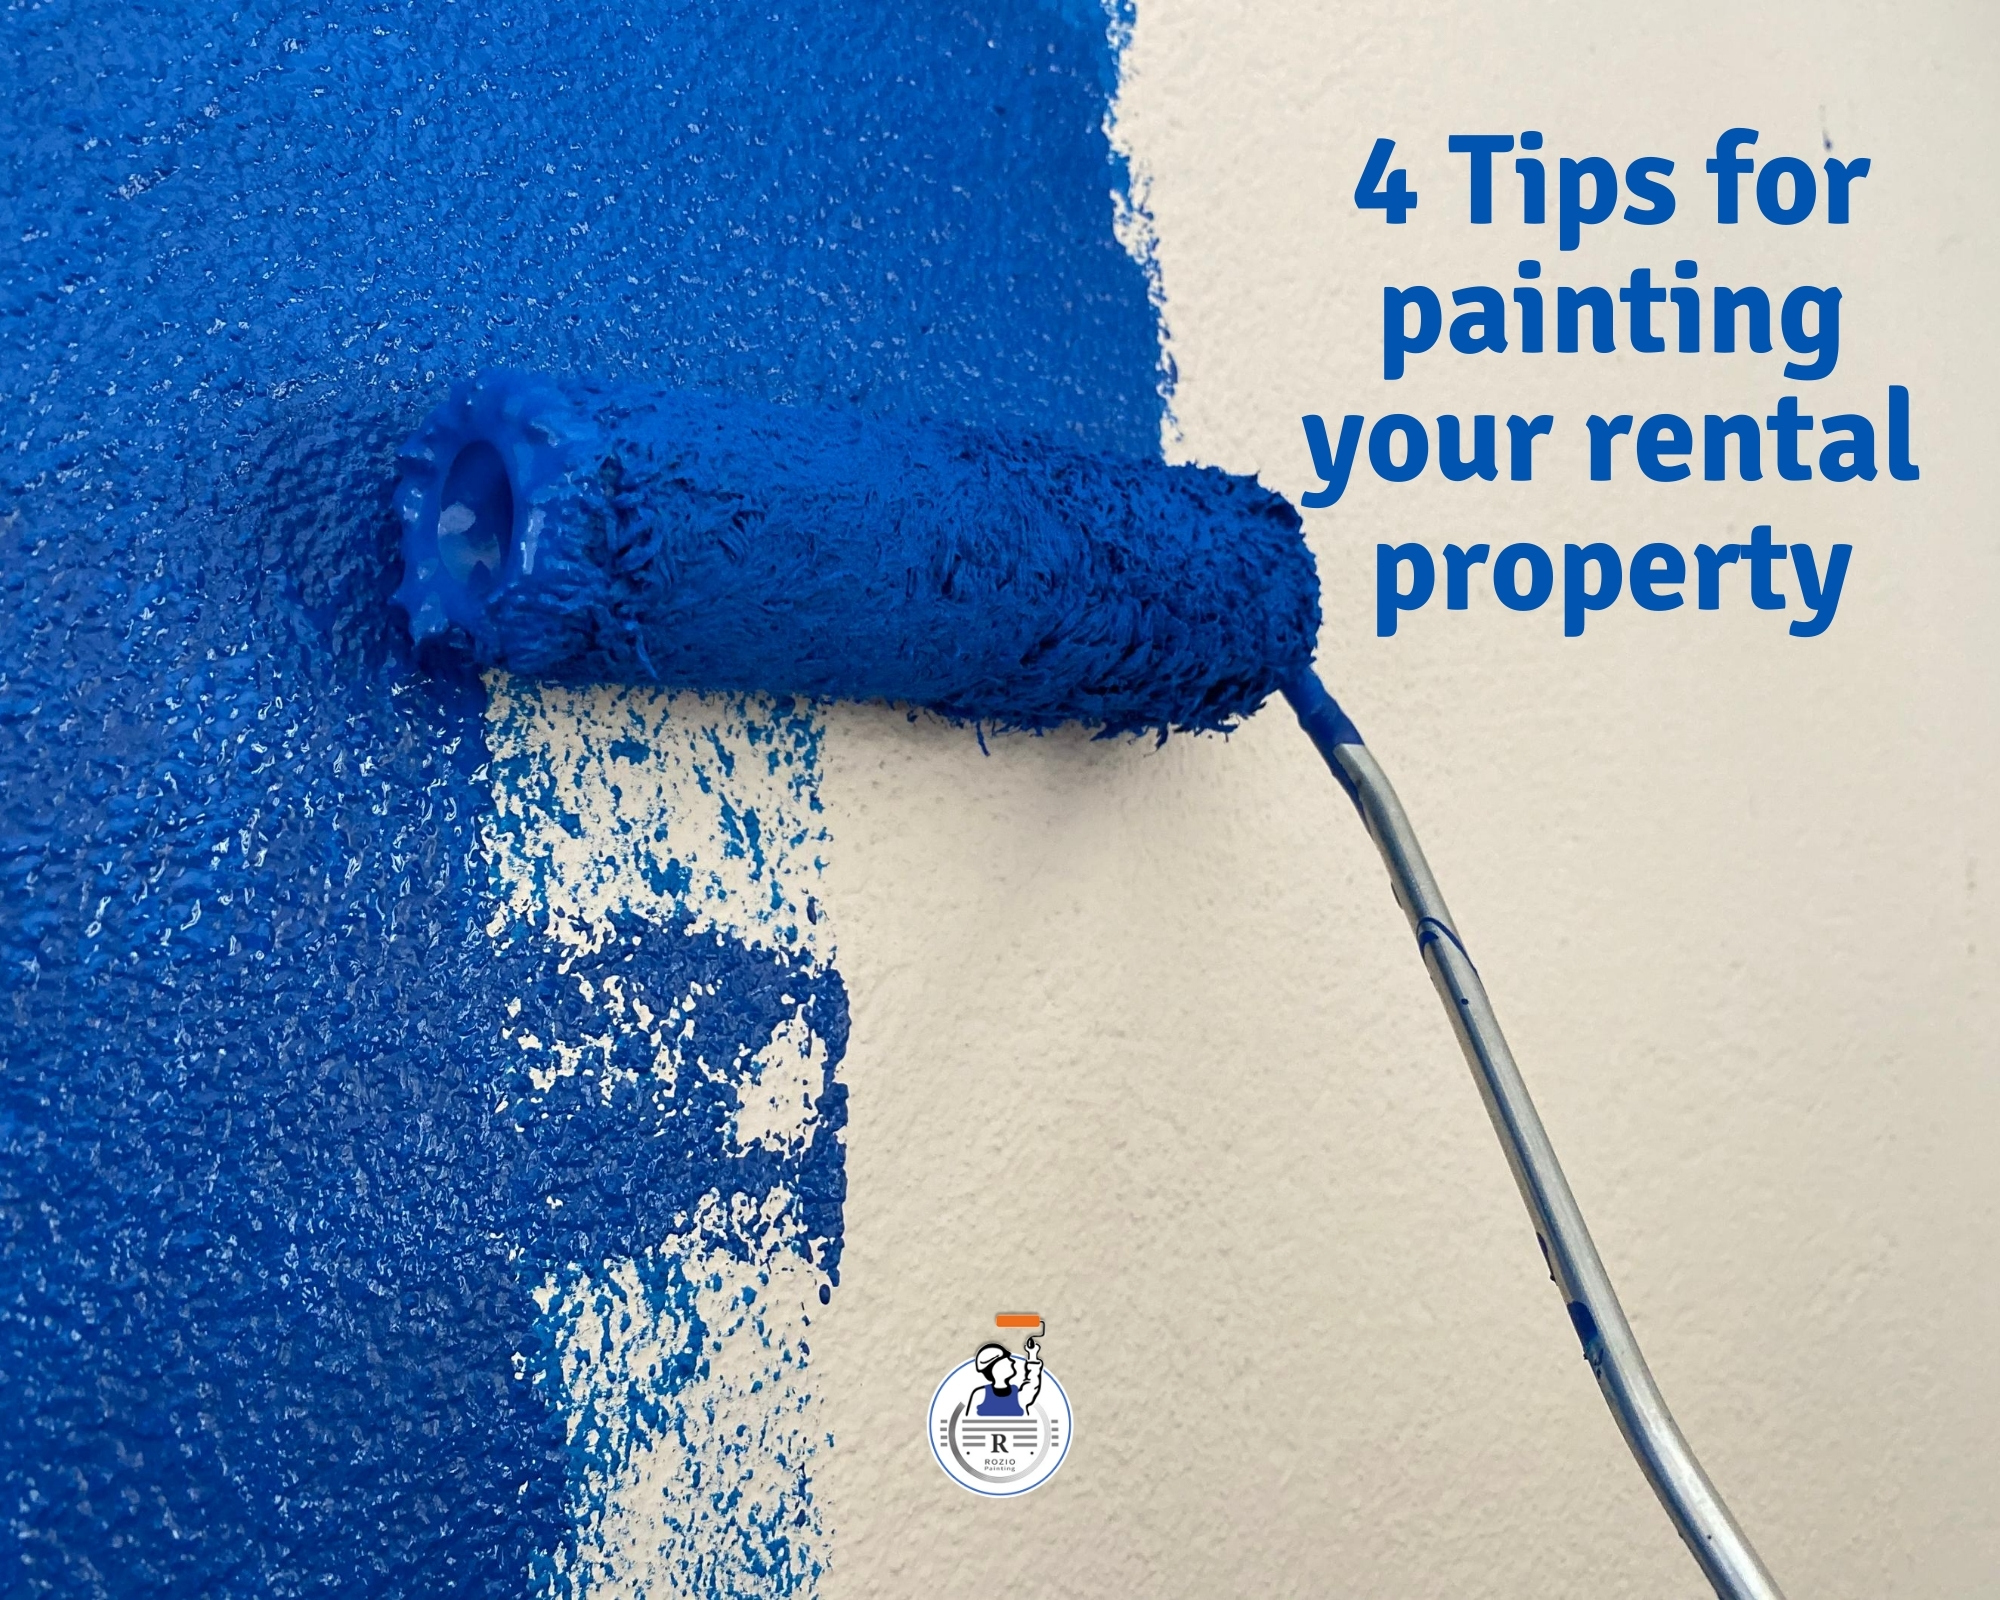 4 Tips for Painting Your Rental Property